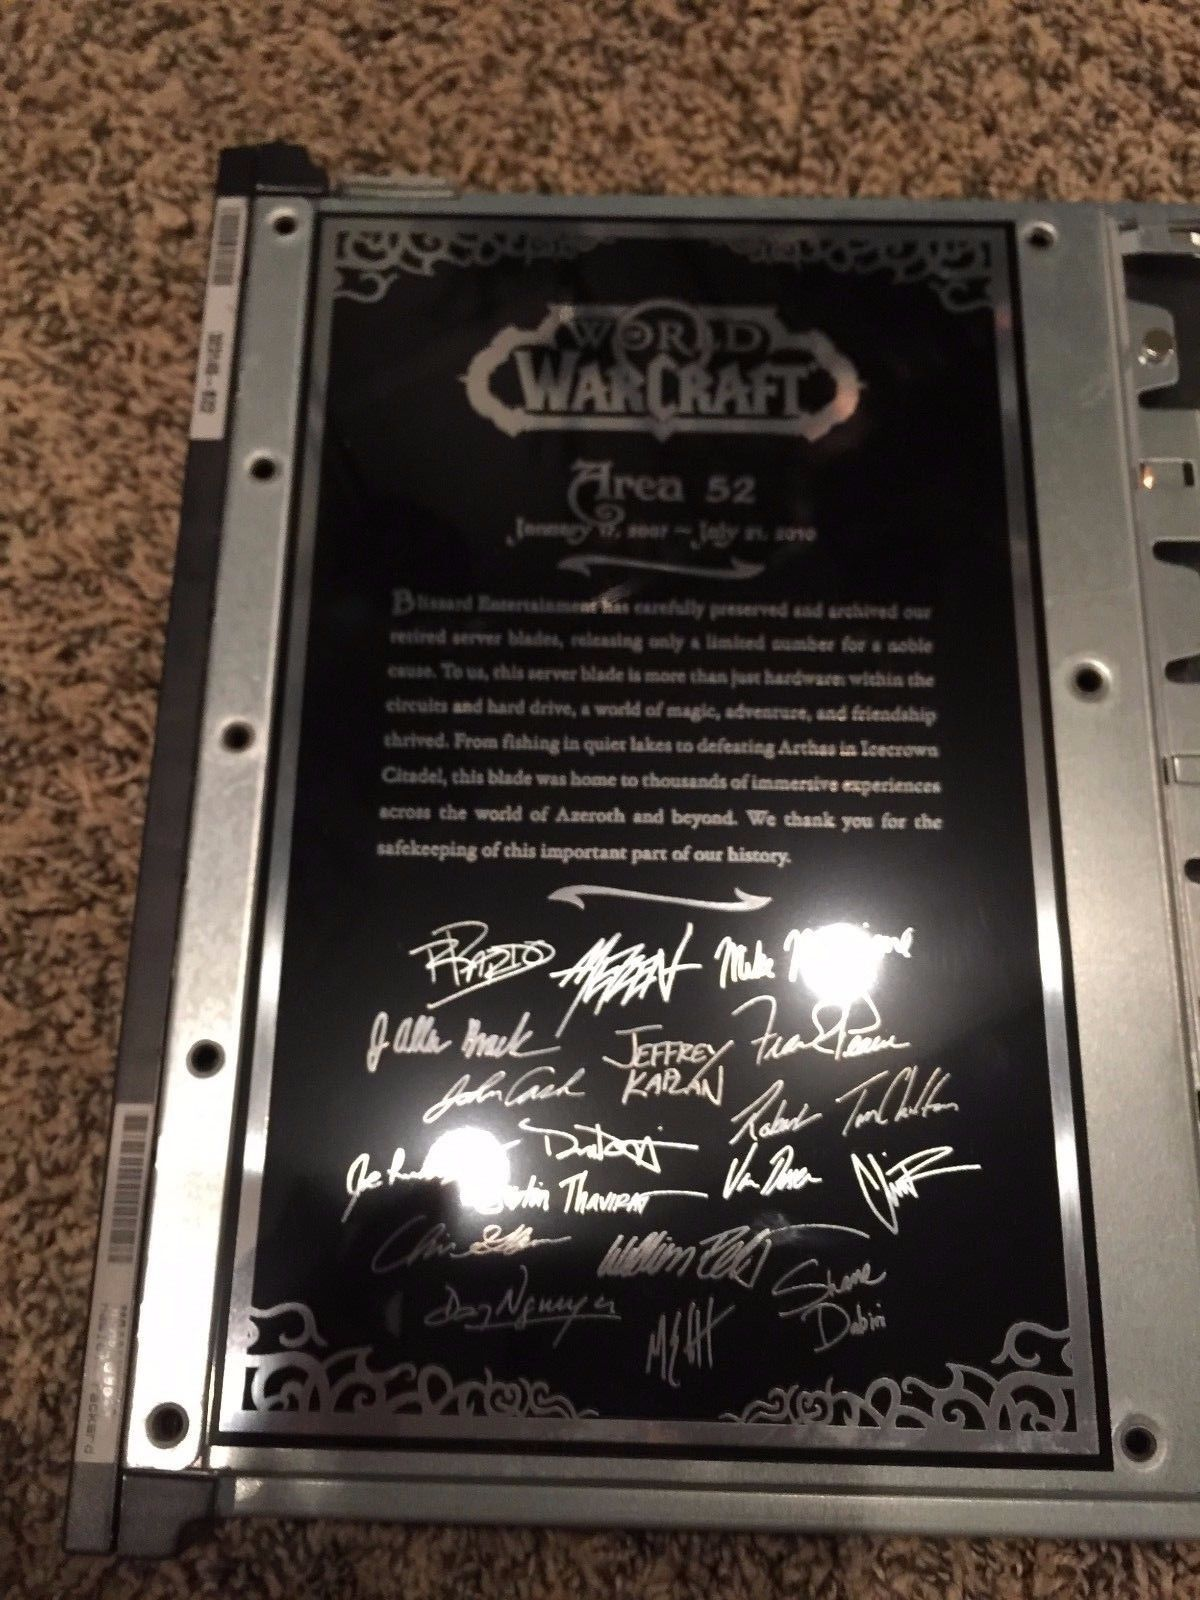 10 Most Expensive Physical Warcraft Collectibles 5